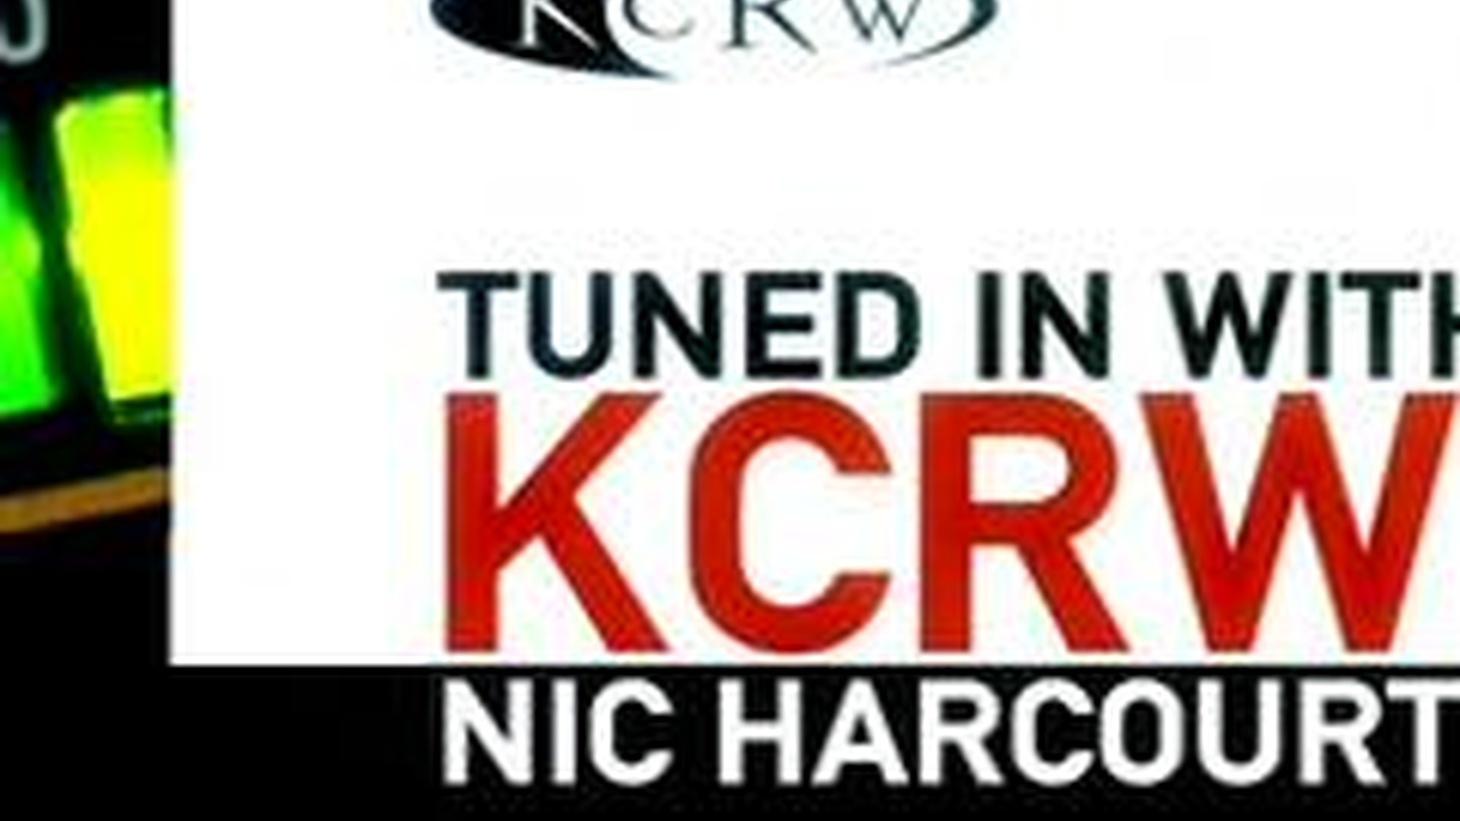 """Today's episode of Tuned In showcases songs from Neva Dinova (""""Supercomputer"""" from YOU MAY ALREADY BE DREAMING), Ida (""""Road to Ruin"""" from MY FAIR, MY DARK), and Thom Yorke's brother Andy Yorke (""""Rise and Fall"""" from SIMPLE). Nic also features Tilly and the Wall with an in-studio cover of Erasure's """"Respect"""" and some really fancy tap dancing by Jamie Pressnall, the percussionist for the band. Download this video as well as daily free music tracks at http://www.KCRW.com."""